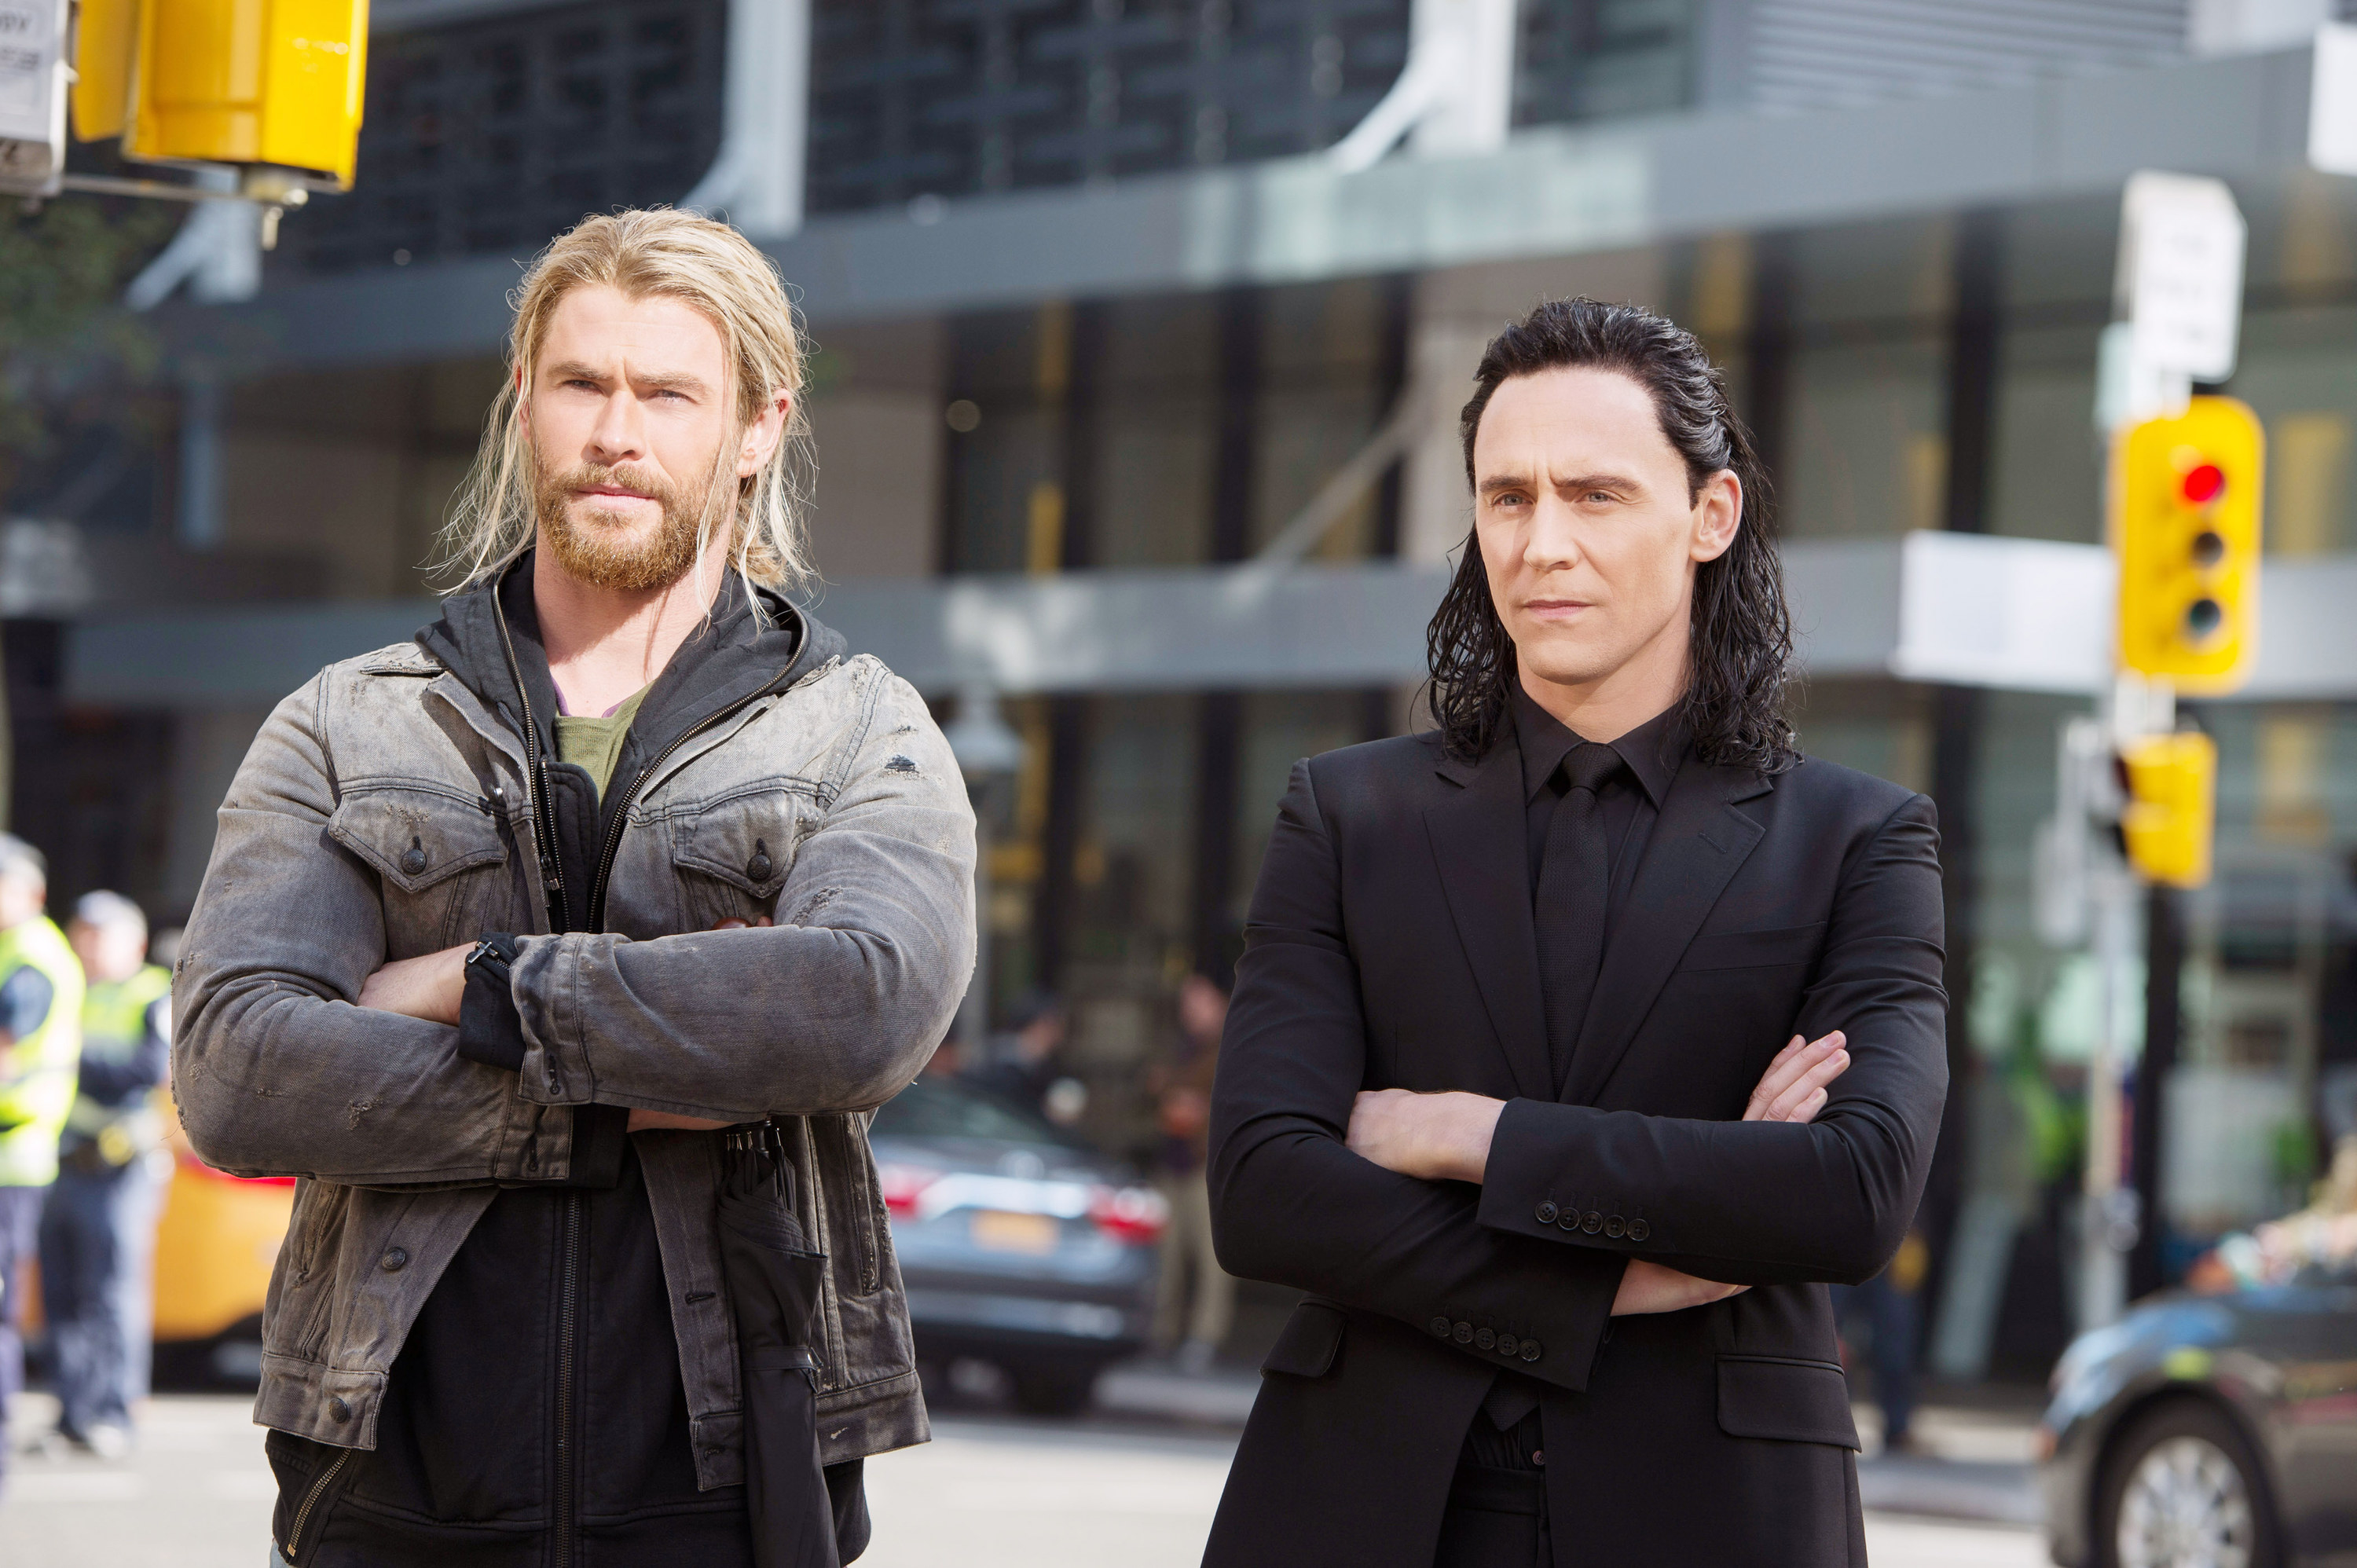 Loki and Thor stand together with arms crossed on a street